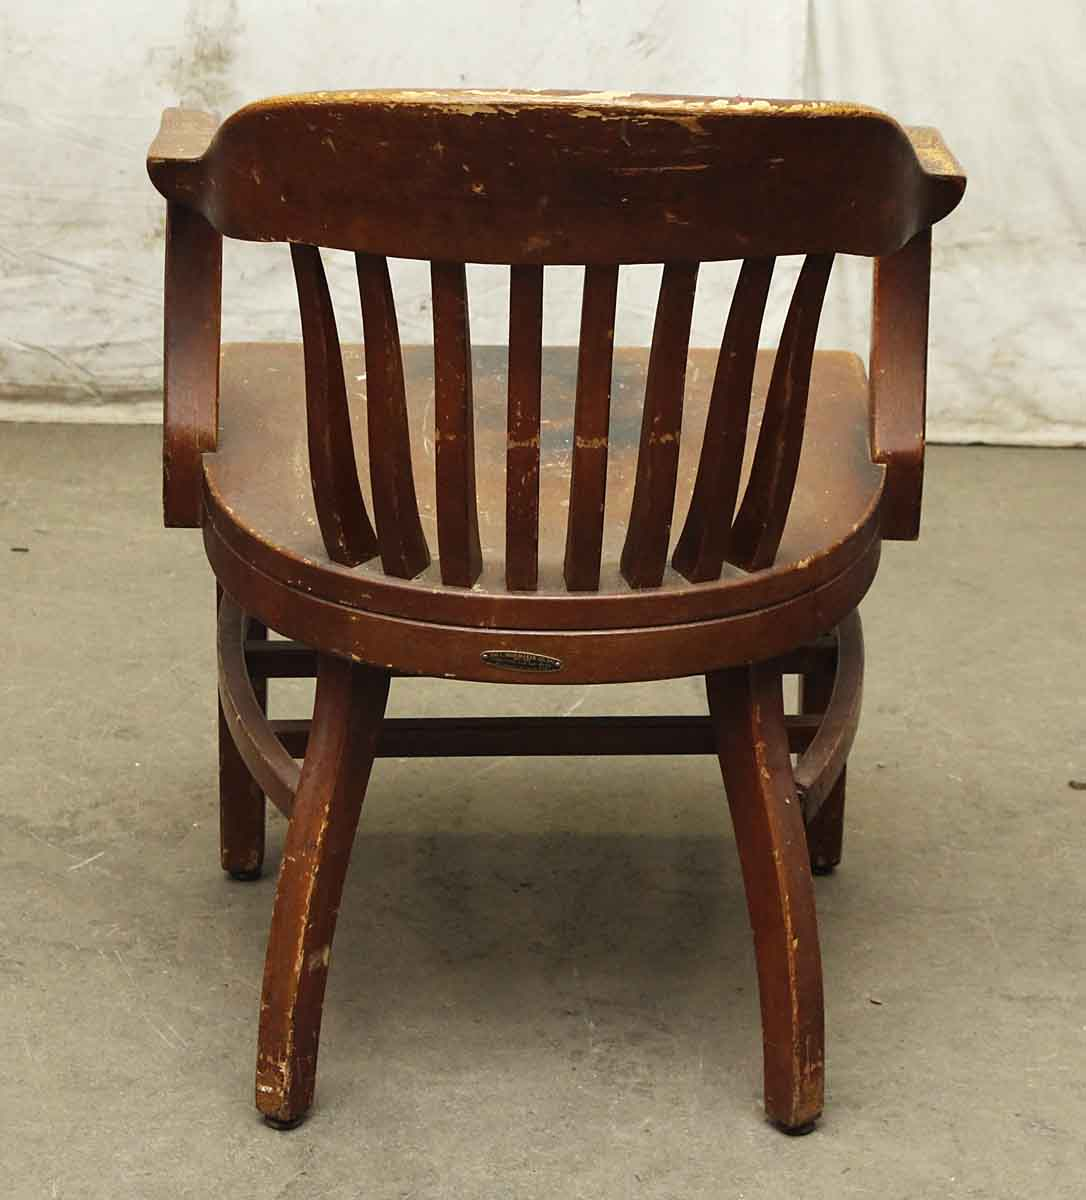 Wood Bankers Chair Wooden Shoemaker Bankers Chair Olde Good Things